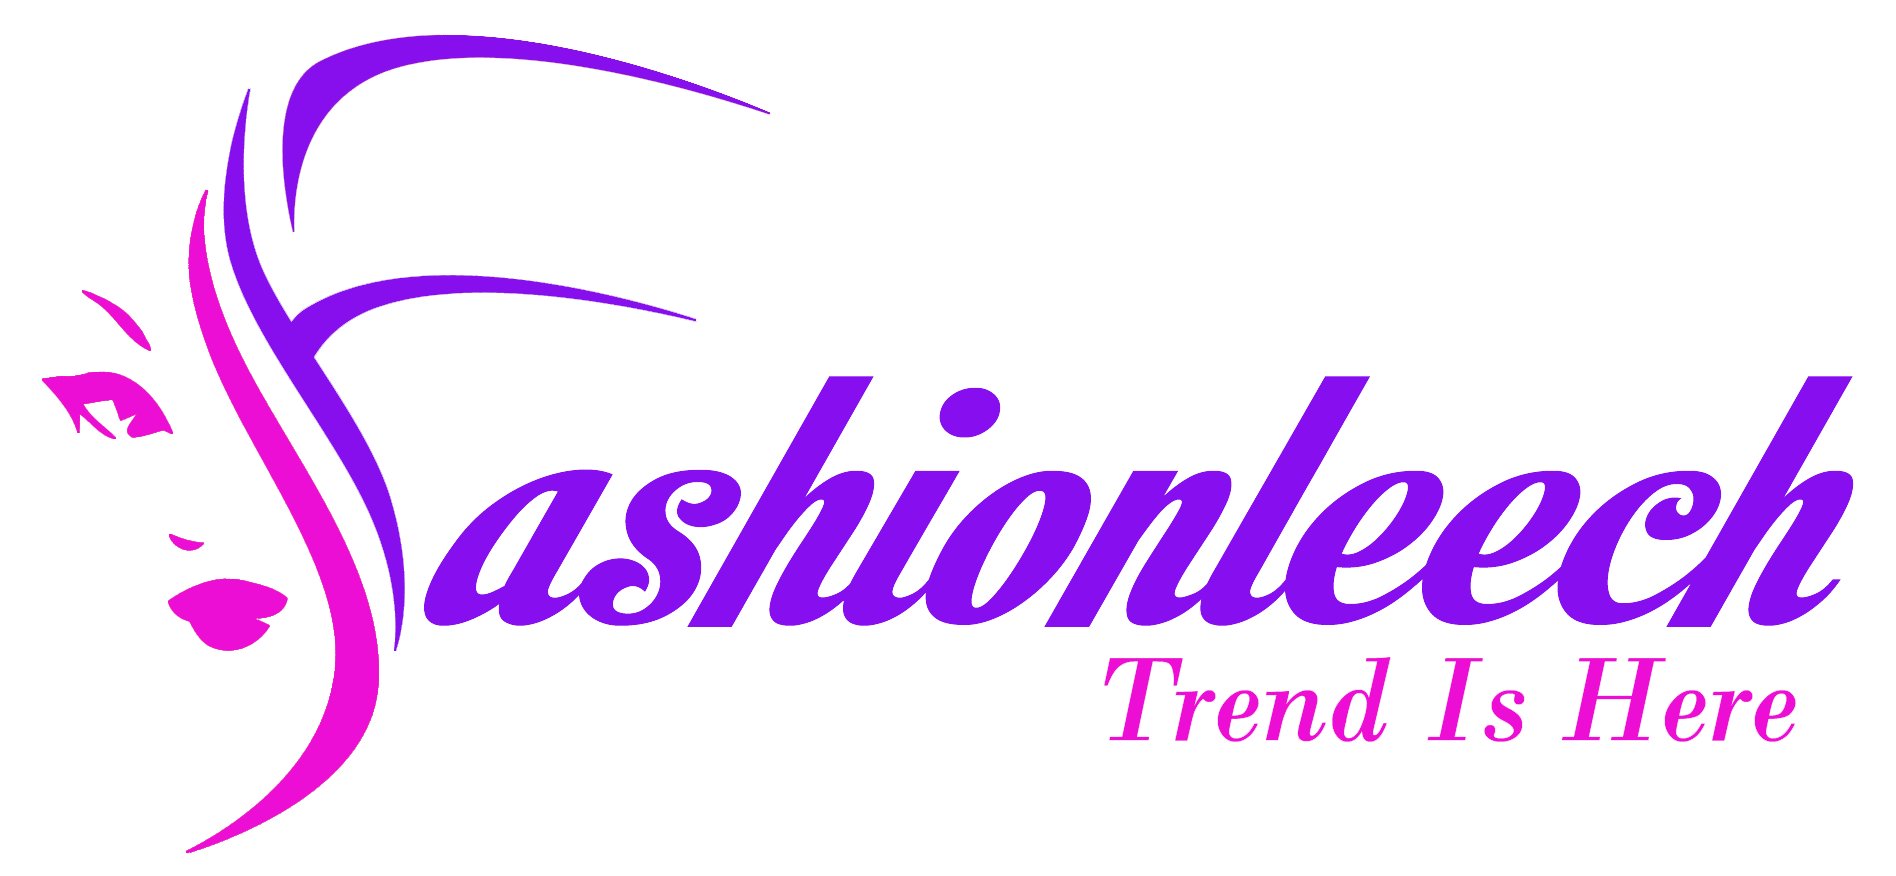 Fashionleech- Trend Is Here